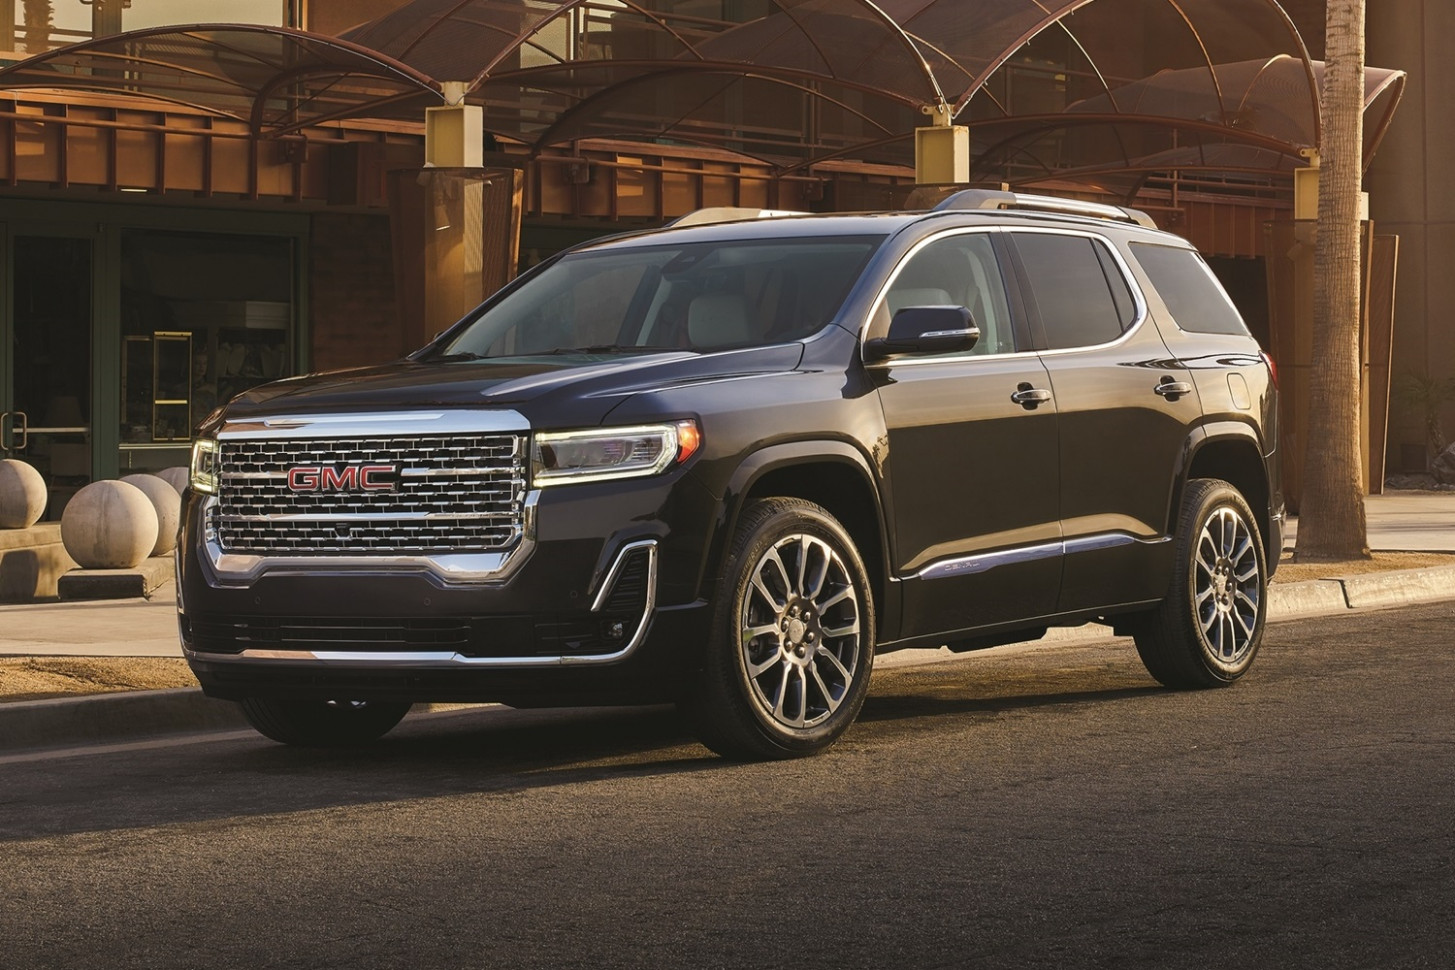 Exterior and Interior 2022 Gmc Acadia Mpg